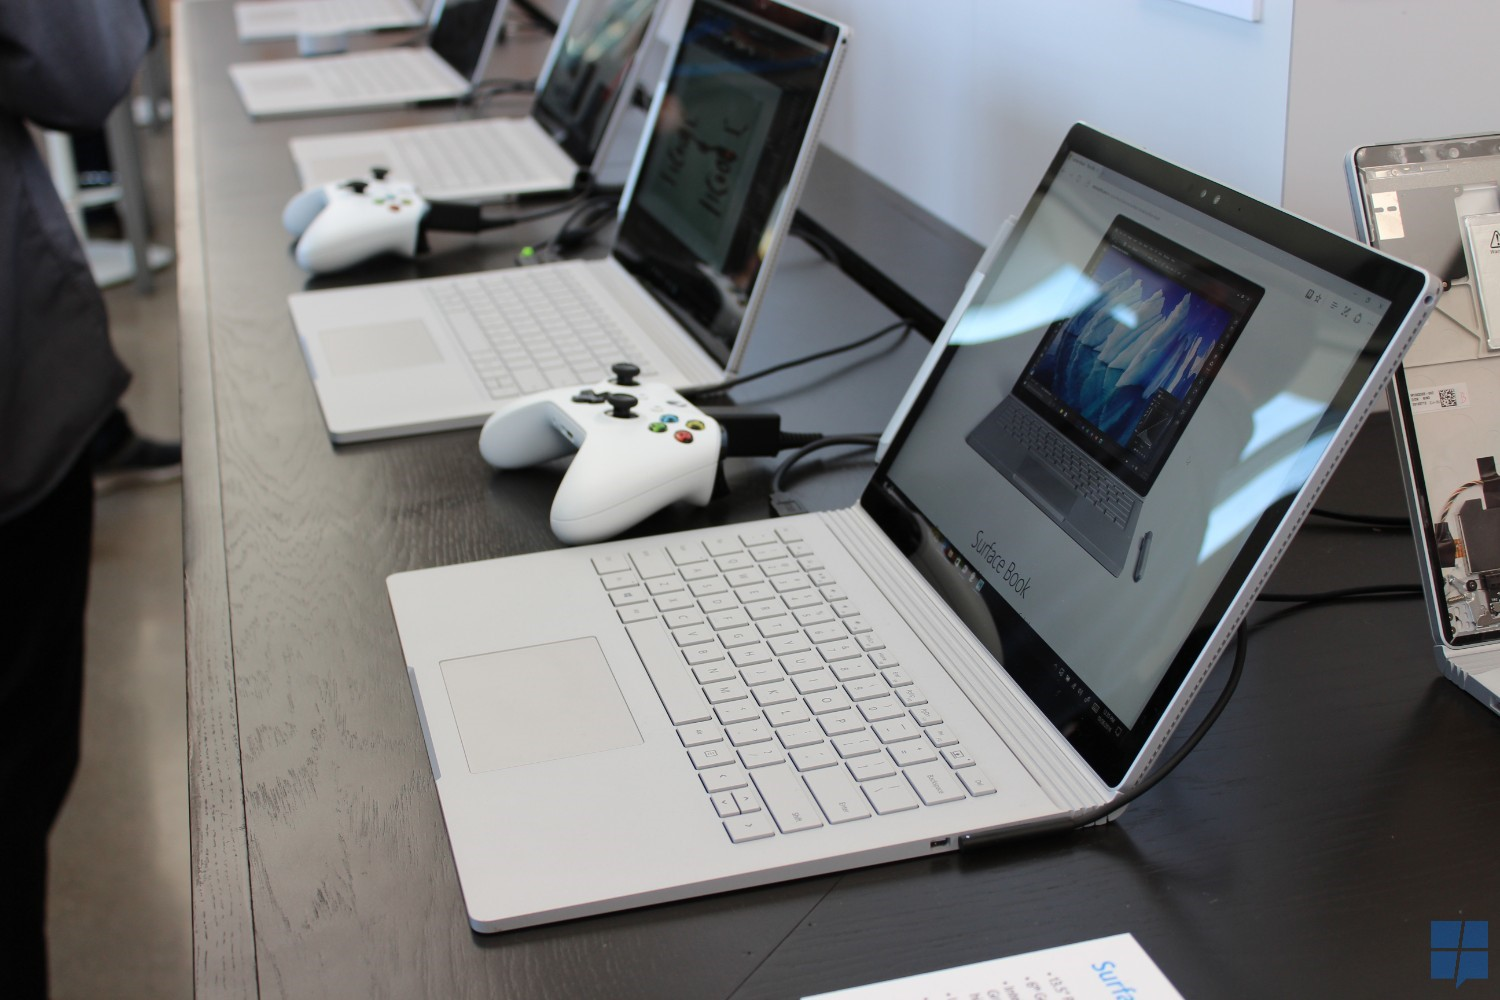 Microsoft's Surfaces get more expensive in the UK (because Brexit) 1